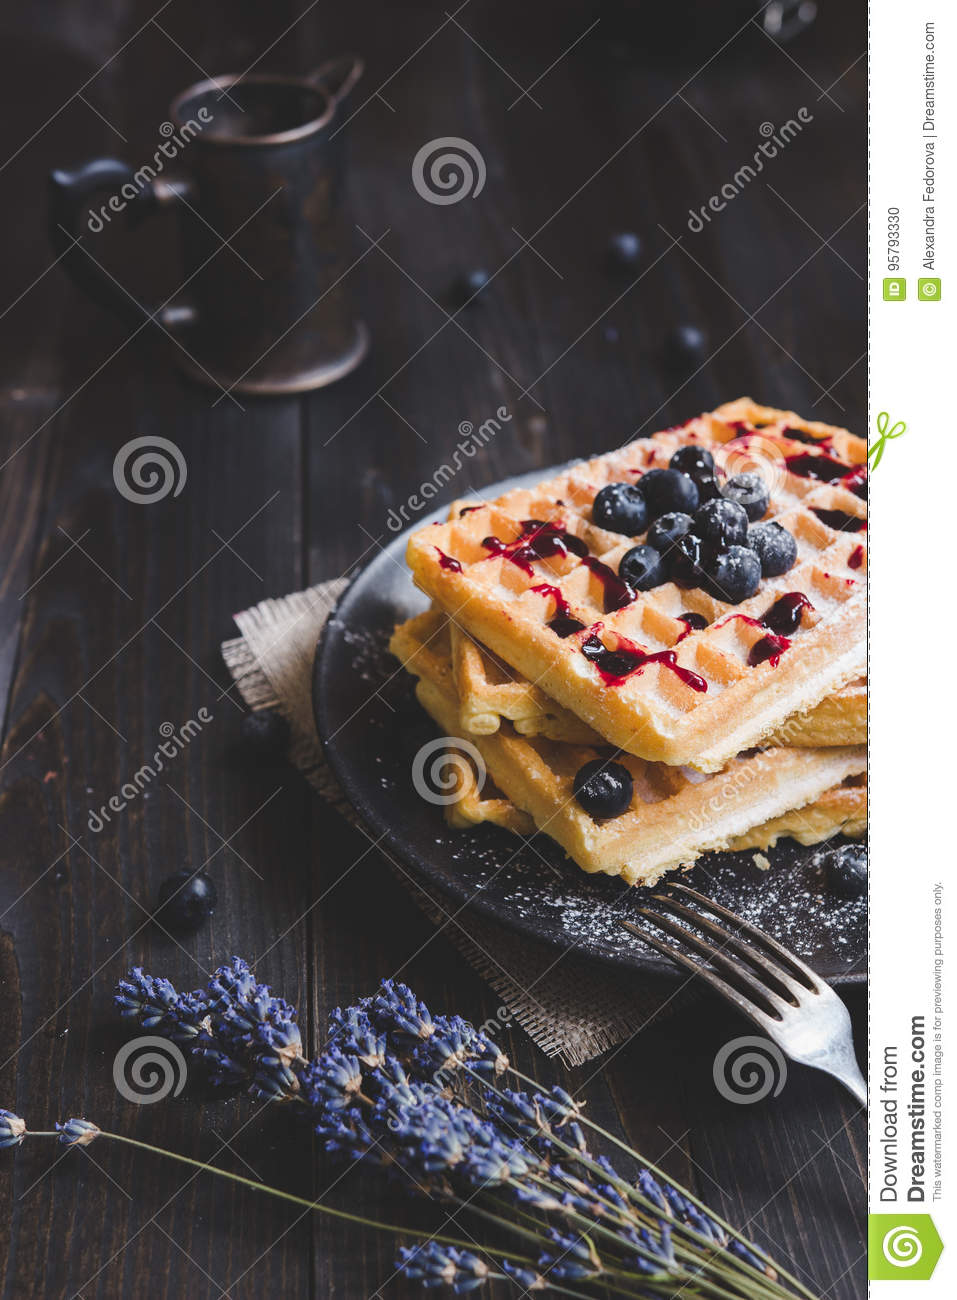 Homemade belgian waffles with blueberries and jam on the dark wooden table